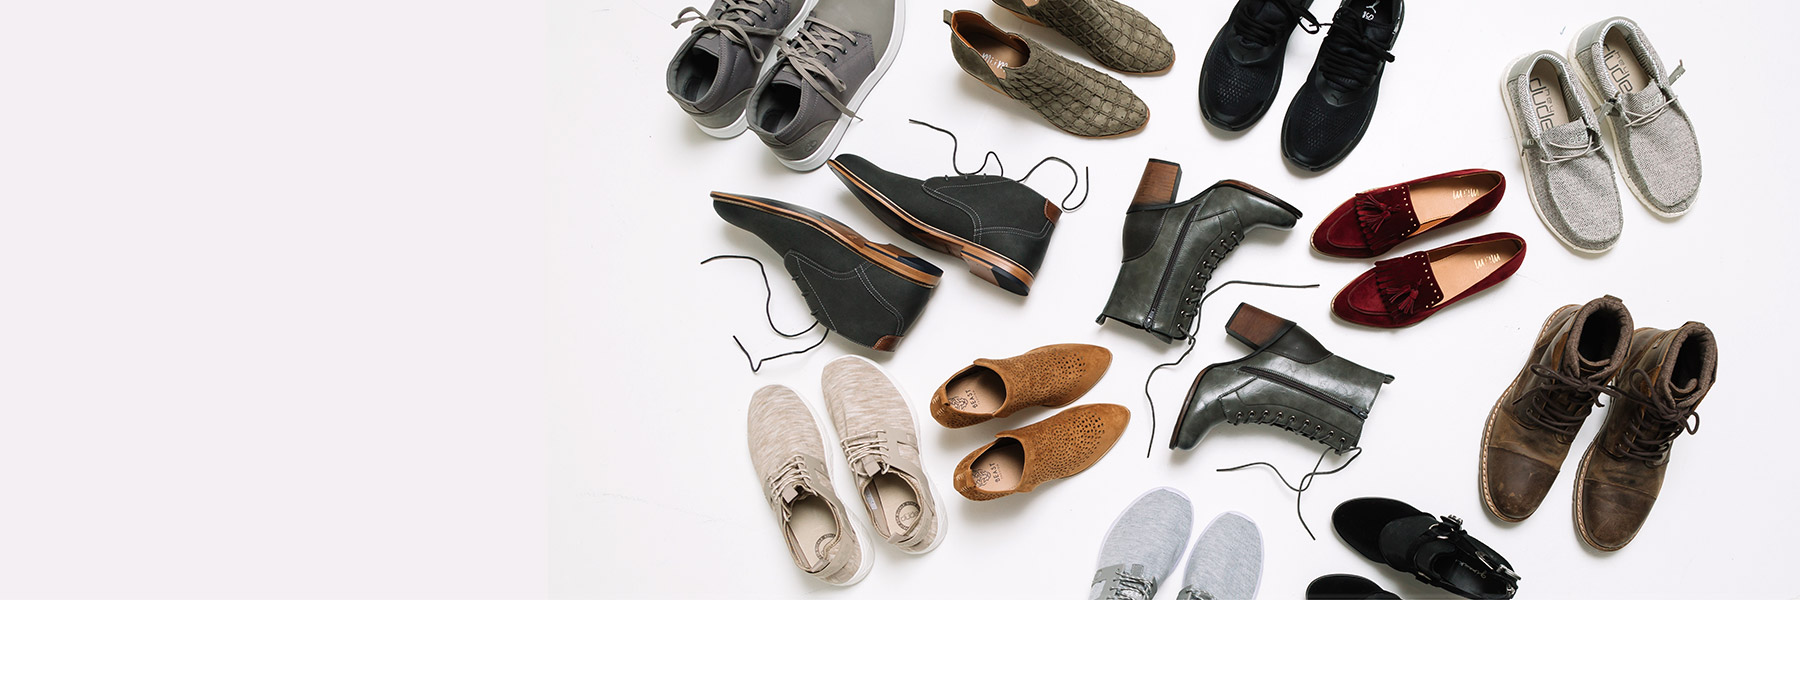 12 pairs of men's and women's shoes